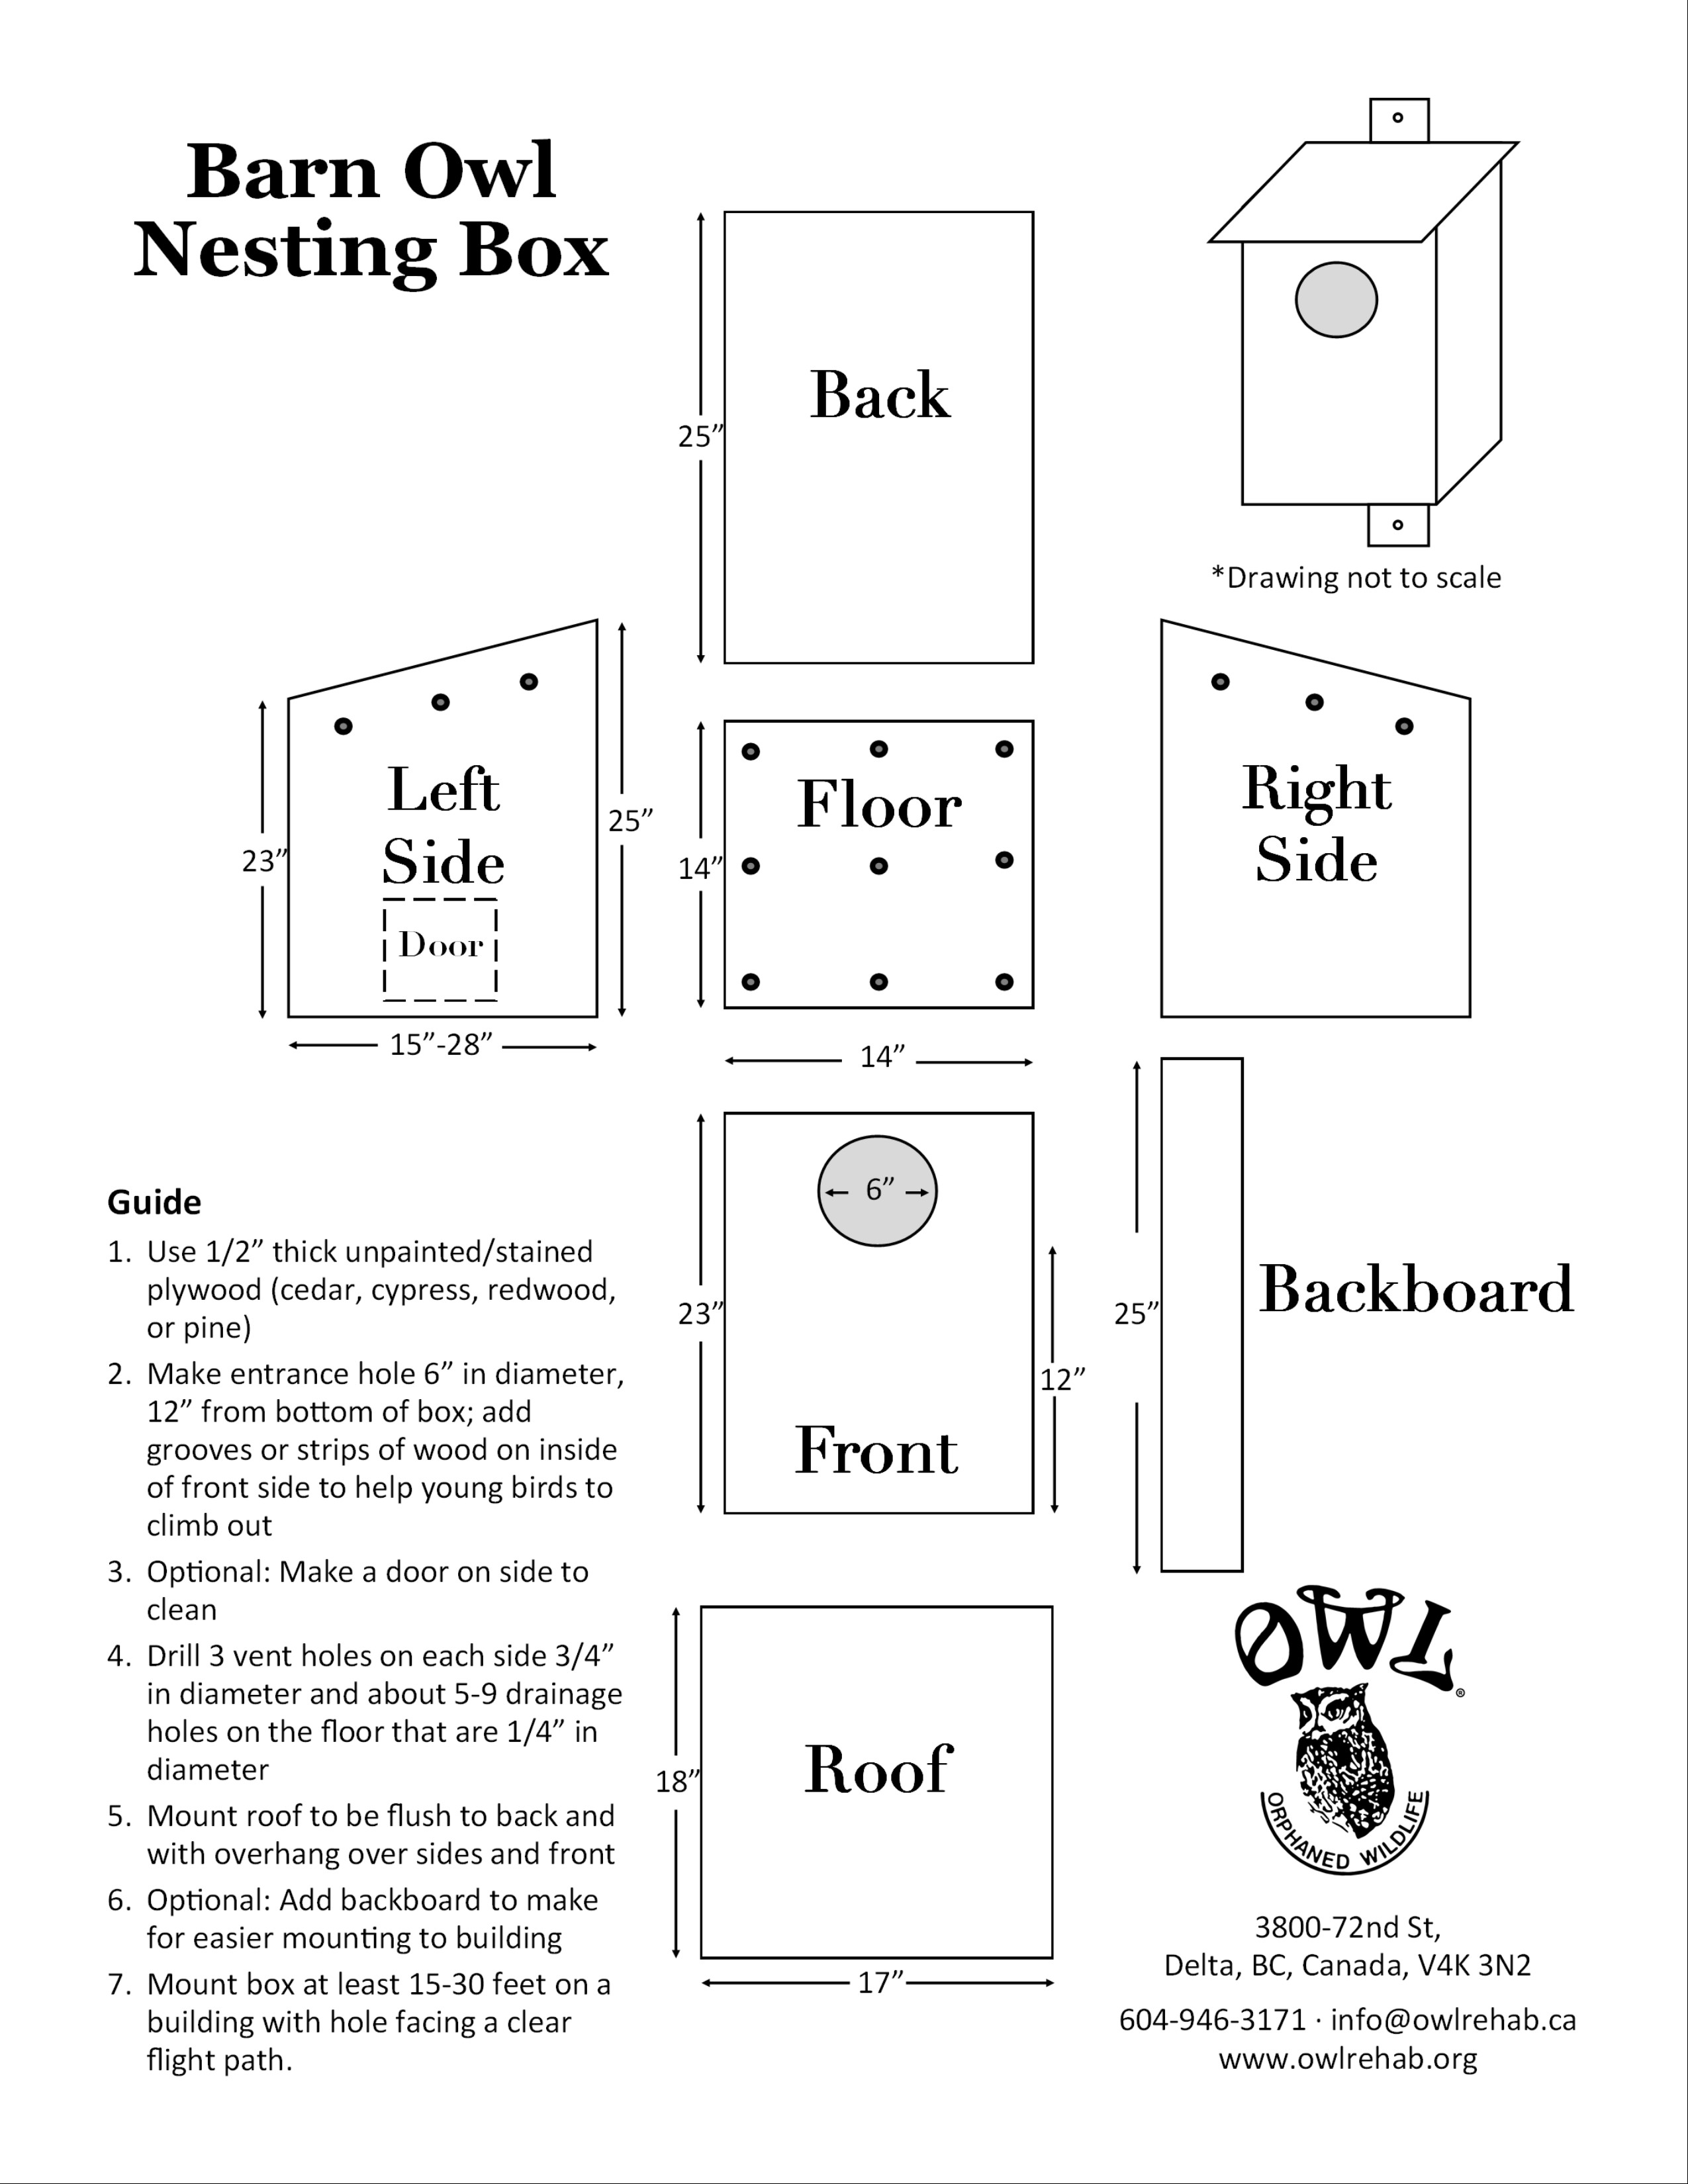 download a printable version of our barn owl box diagram